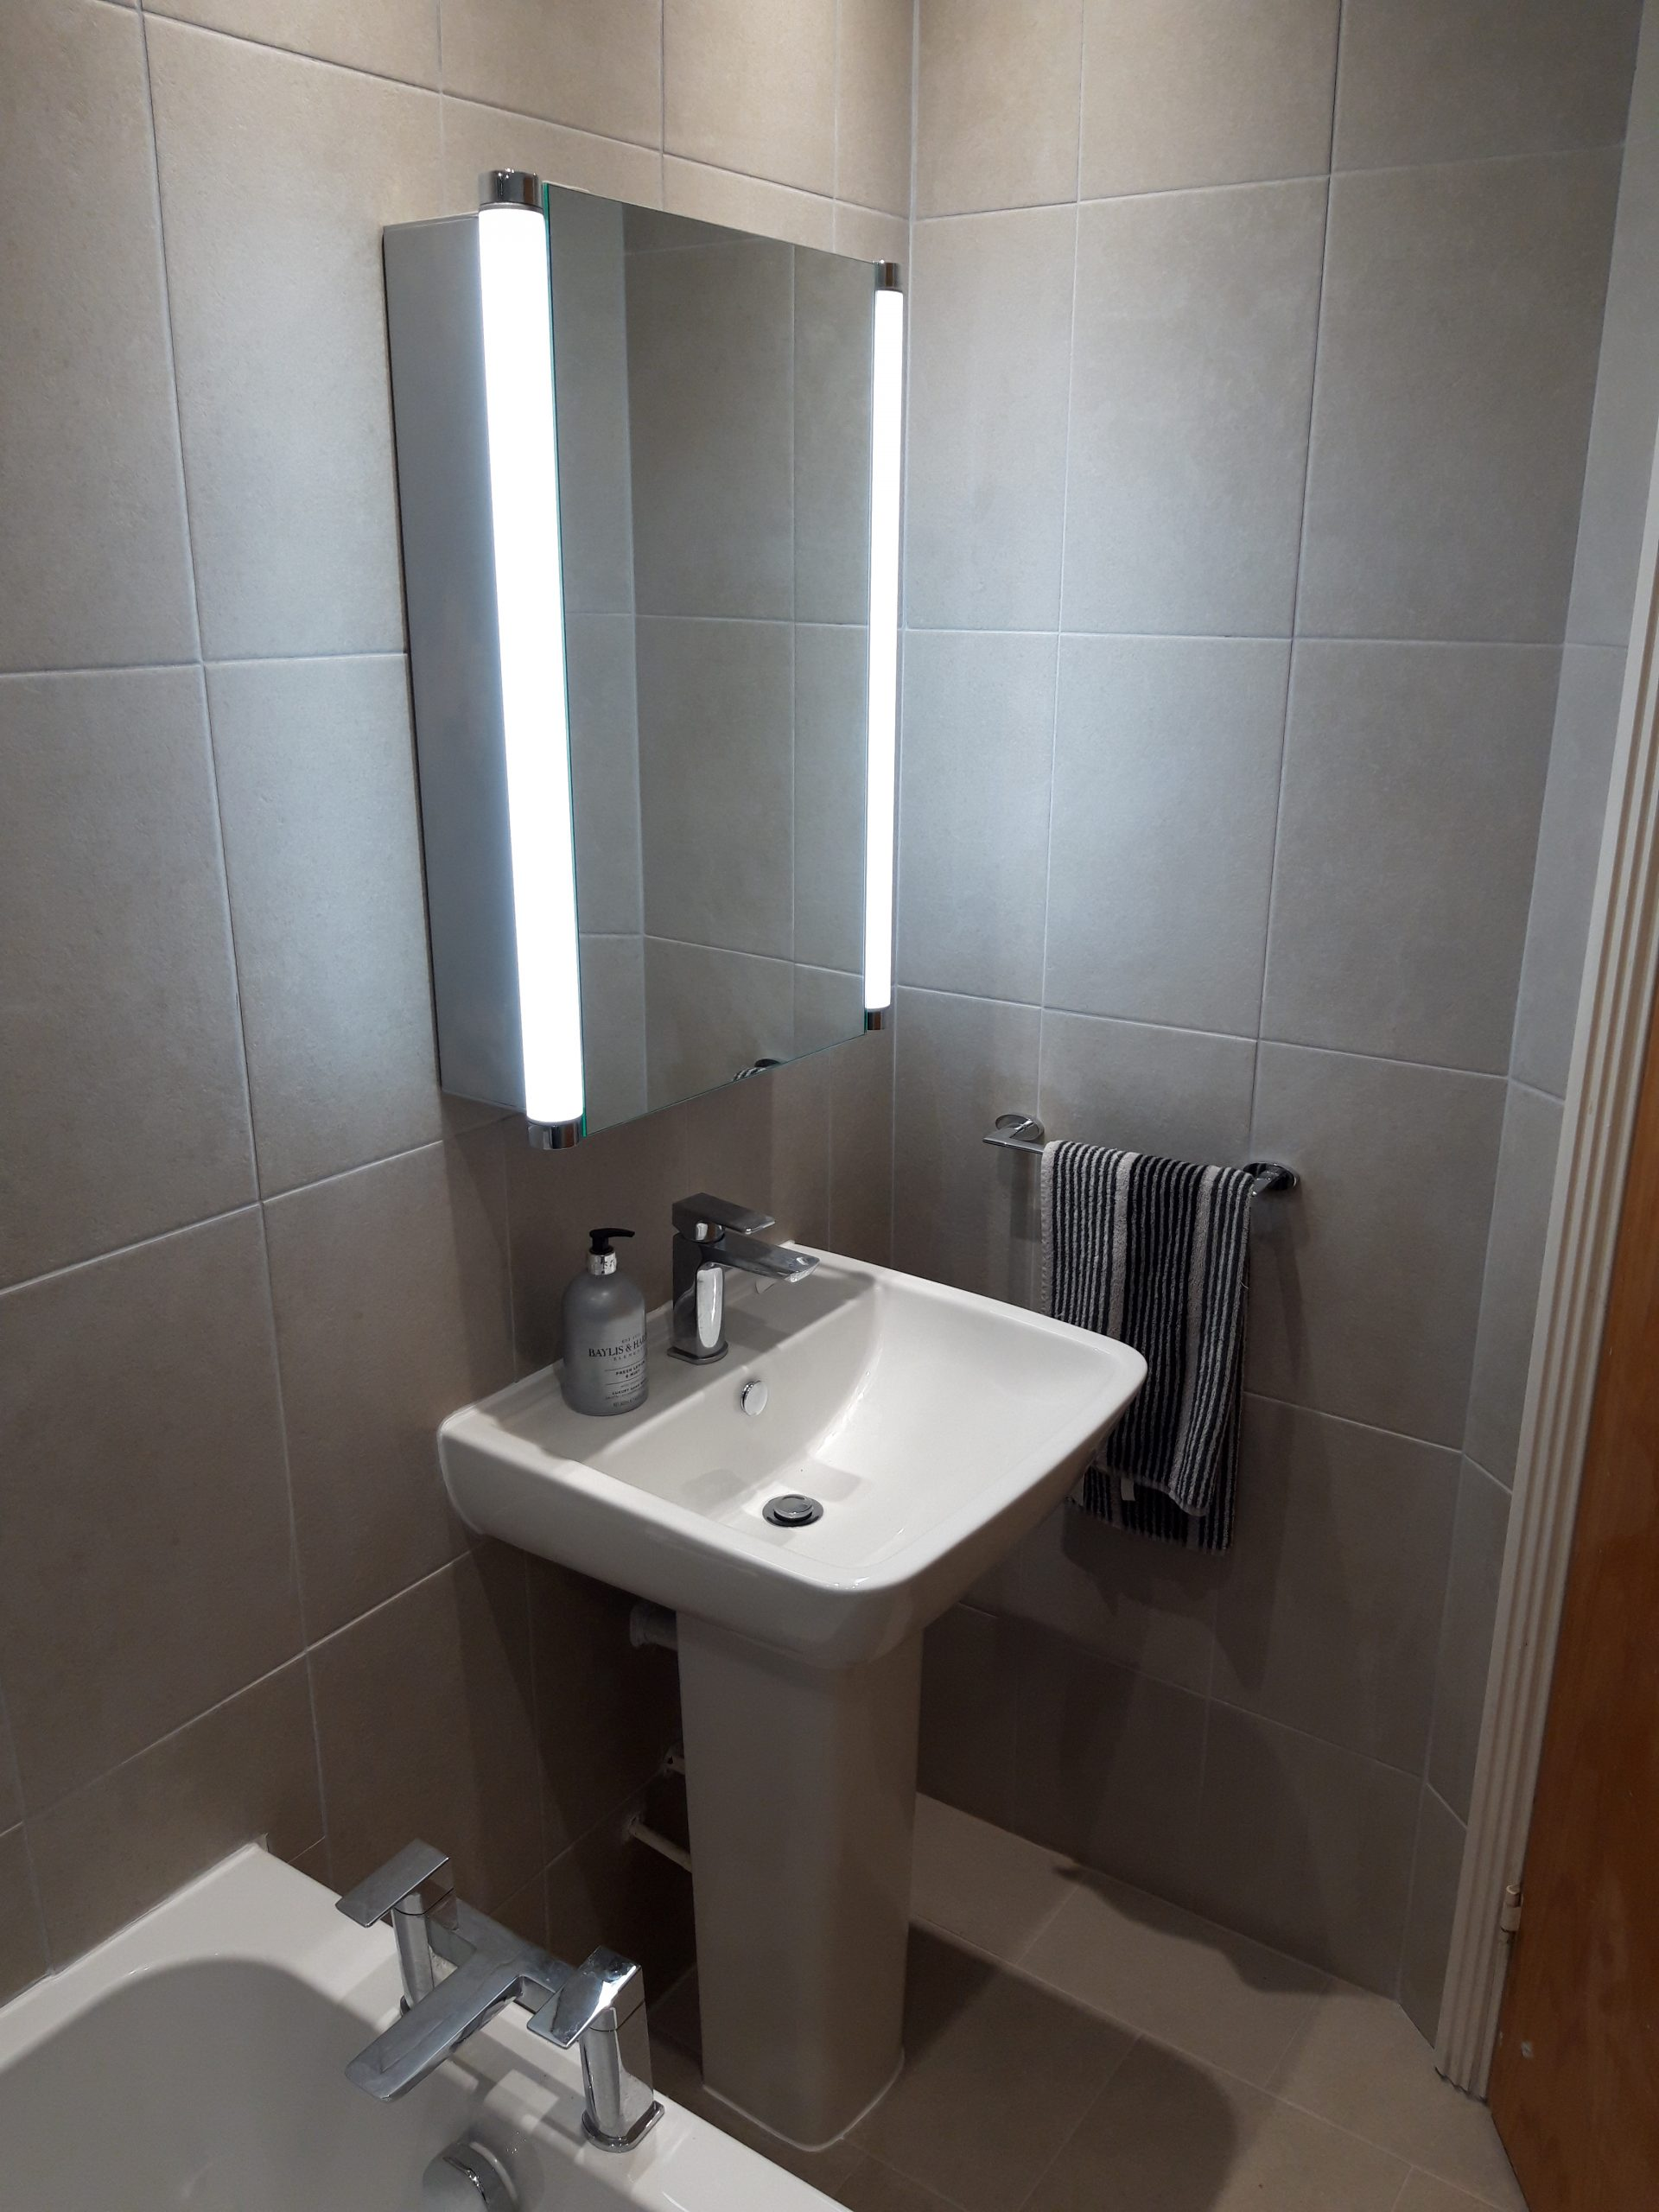 bathroom sink mirror light